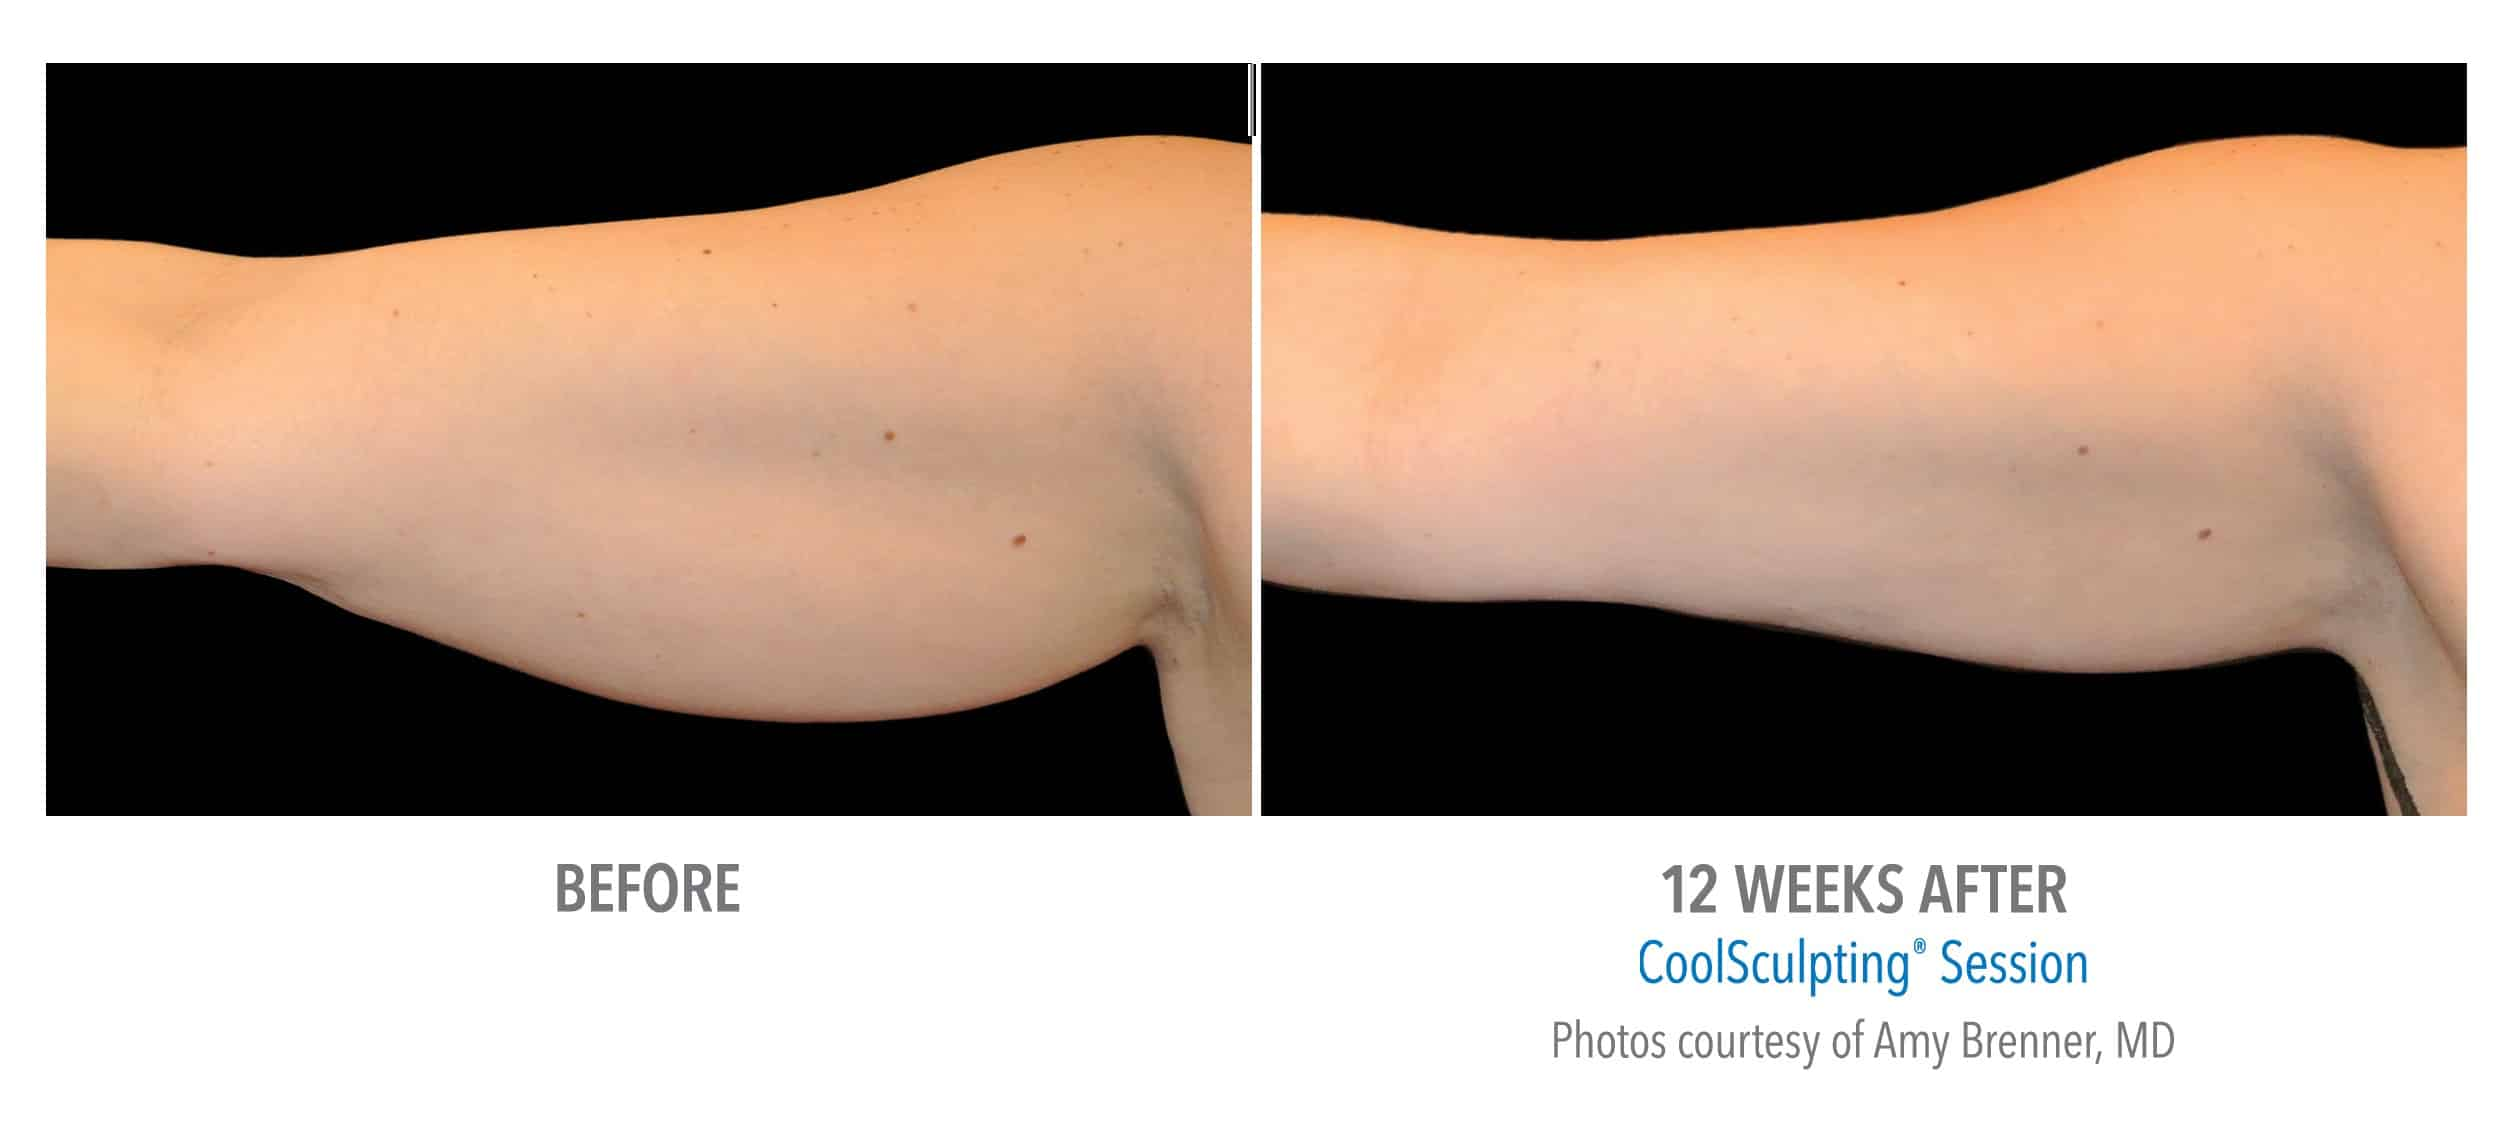 CoolSculpting® Arms Before and After